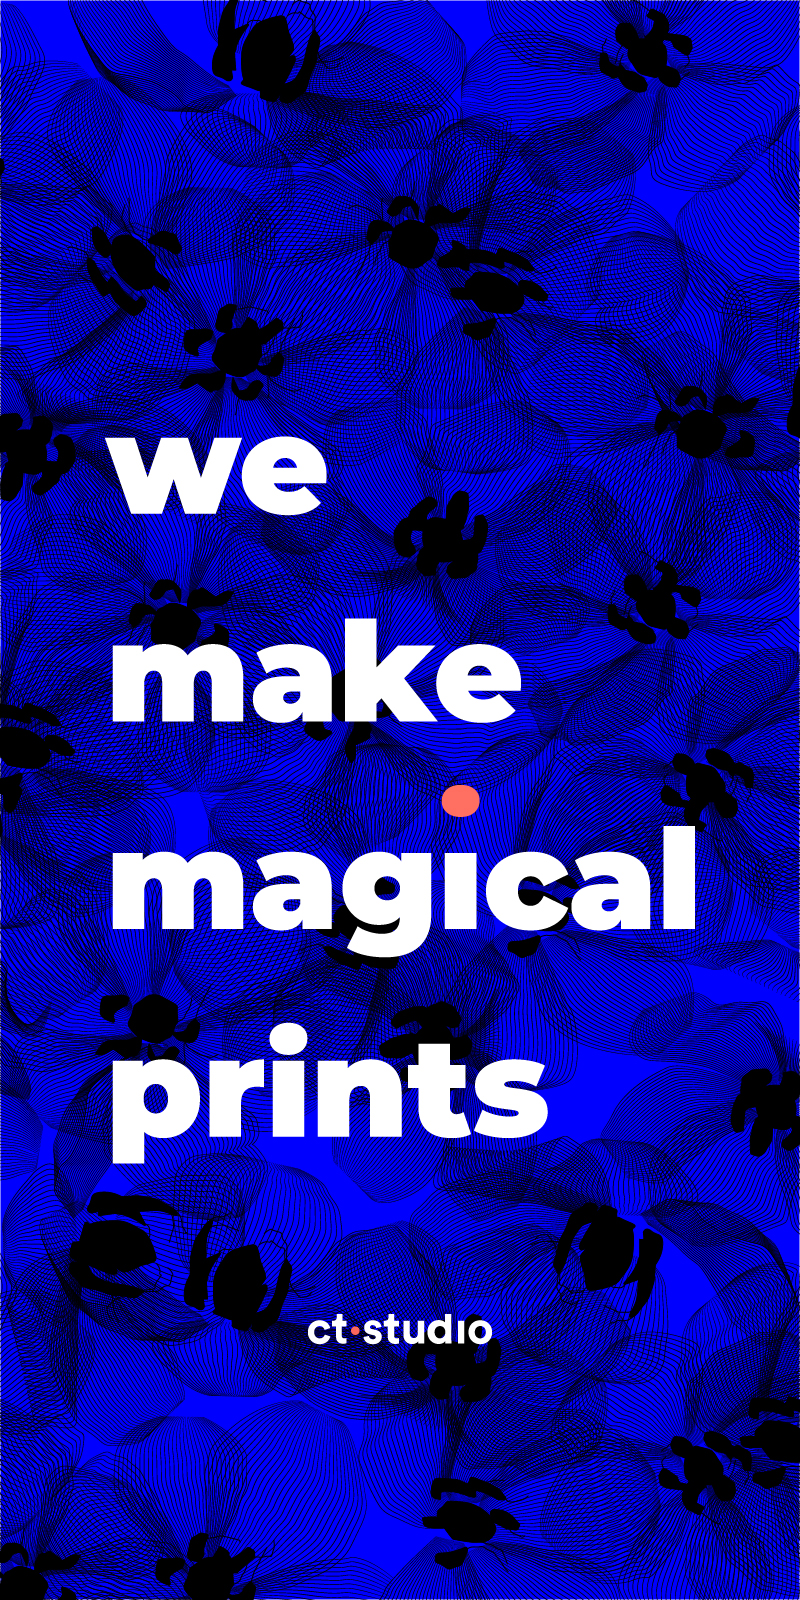 ct•studio - We make magical prints